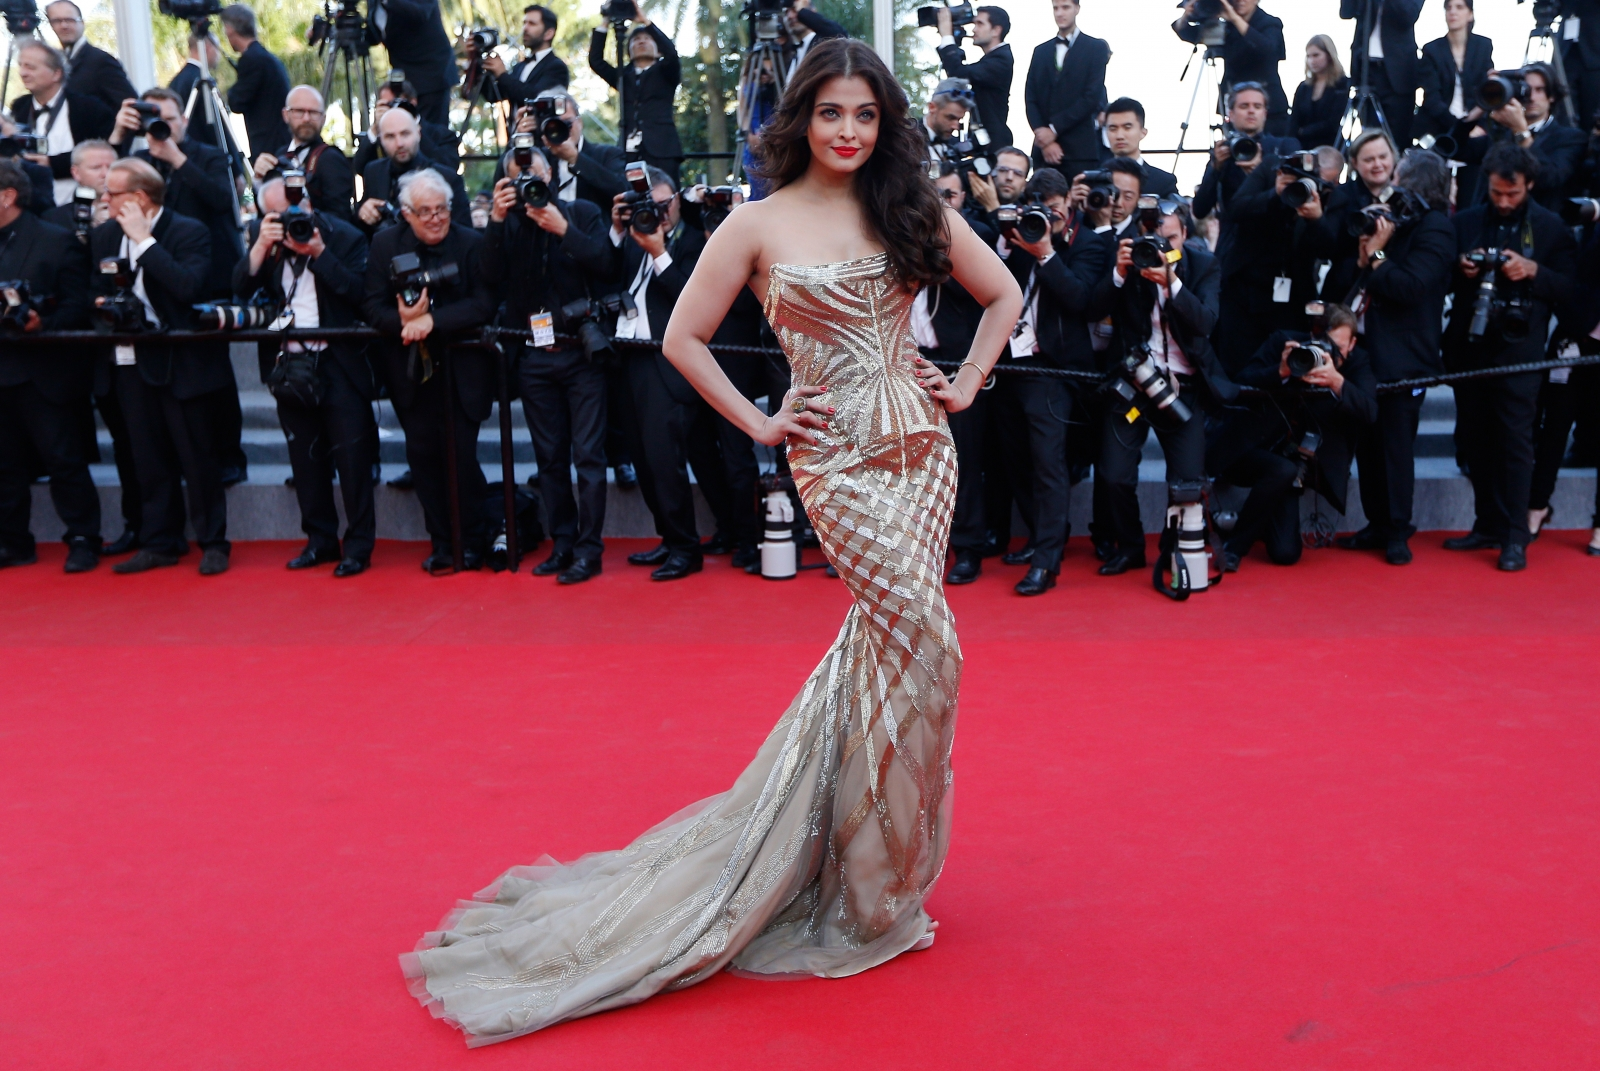 cannes film festival 2015 aishwarya rai bachchan 39 s red carpet looks over the years. Black Bedroom Furniture Sets. Home Design Ideas